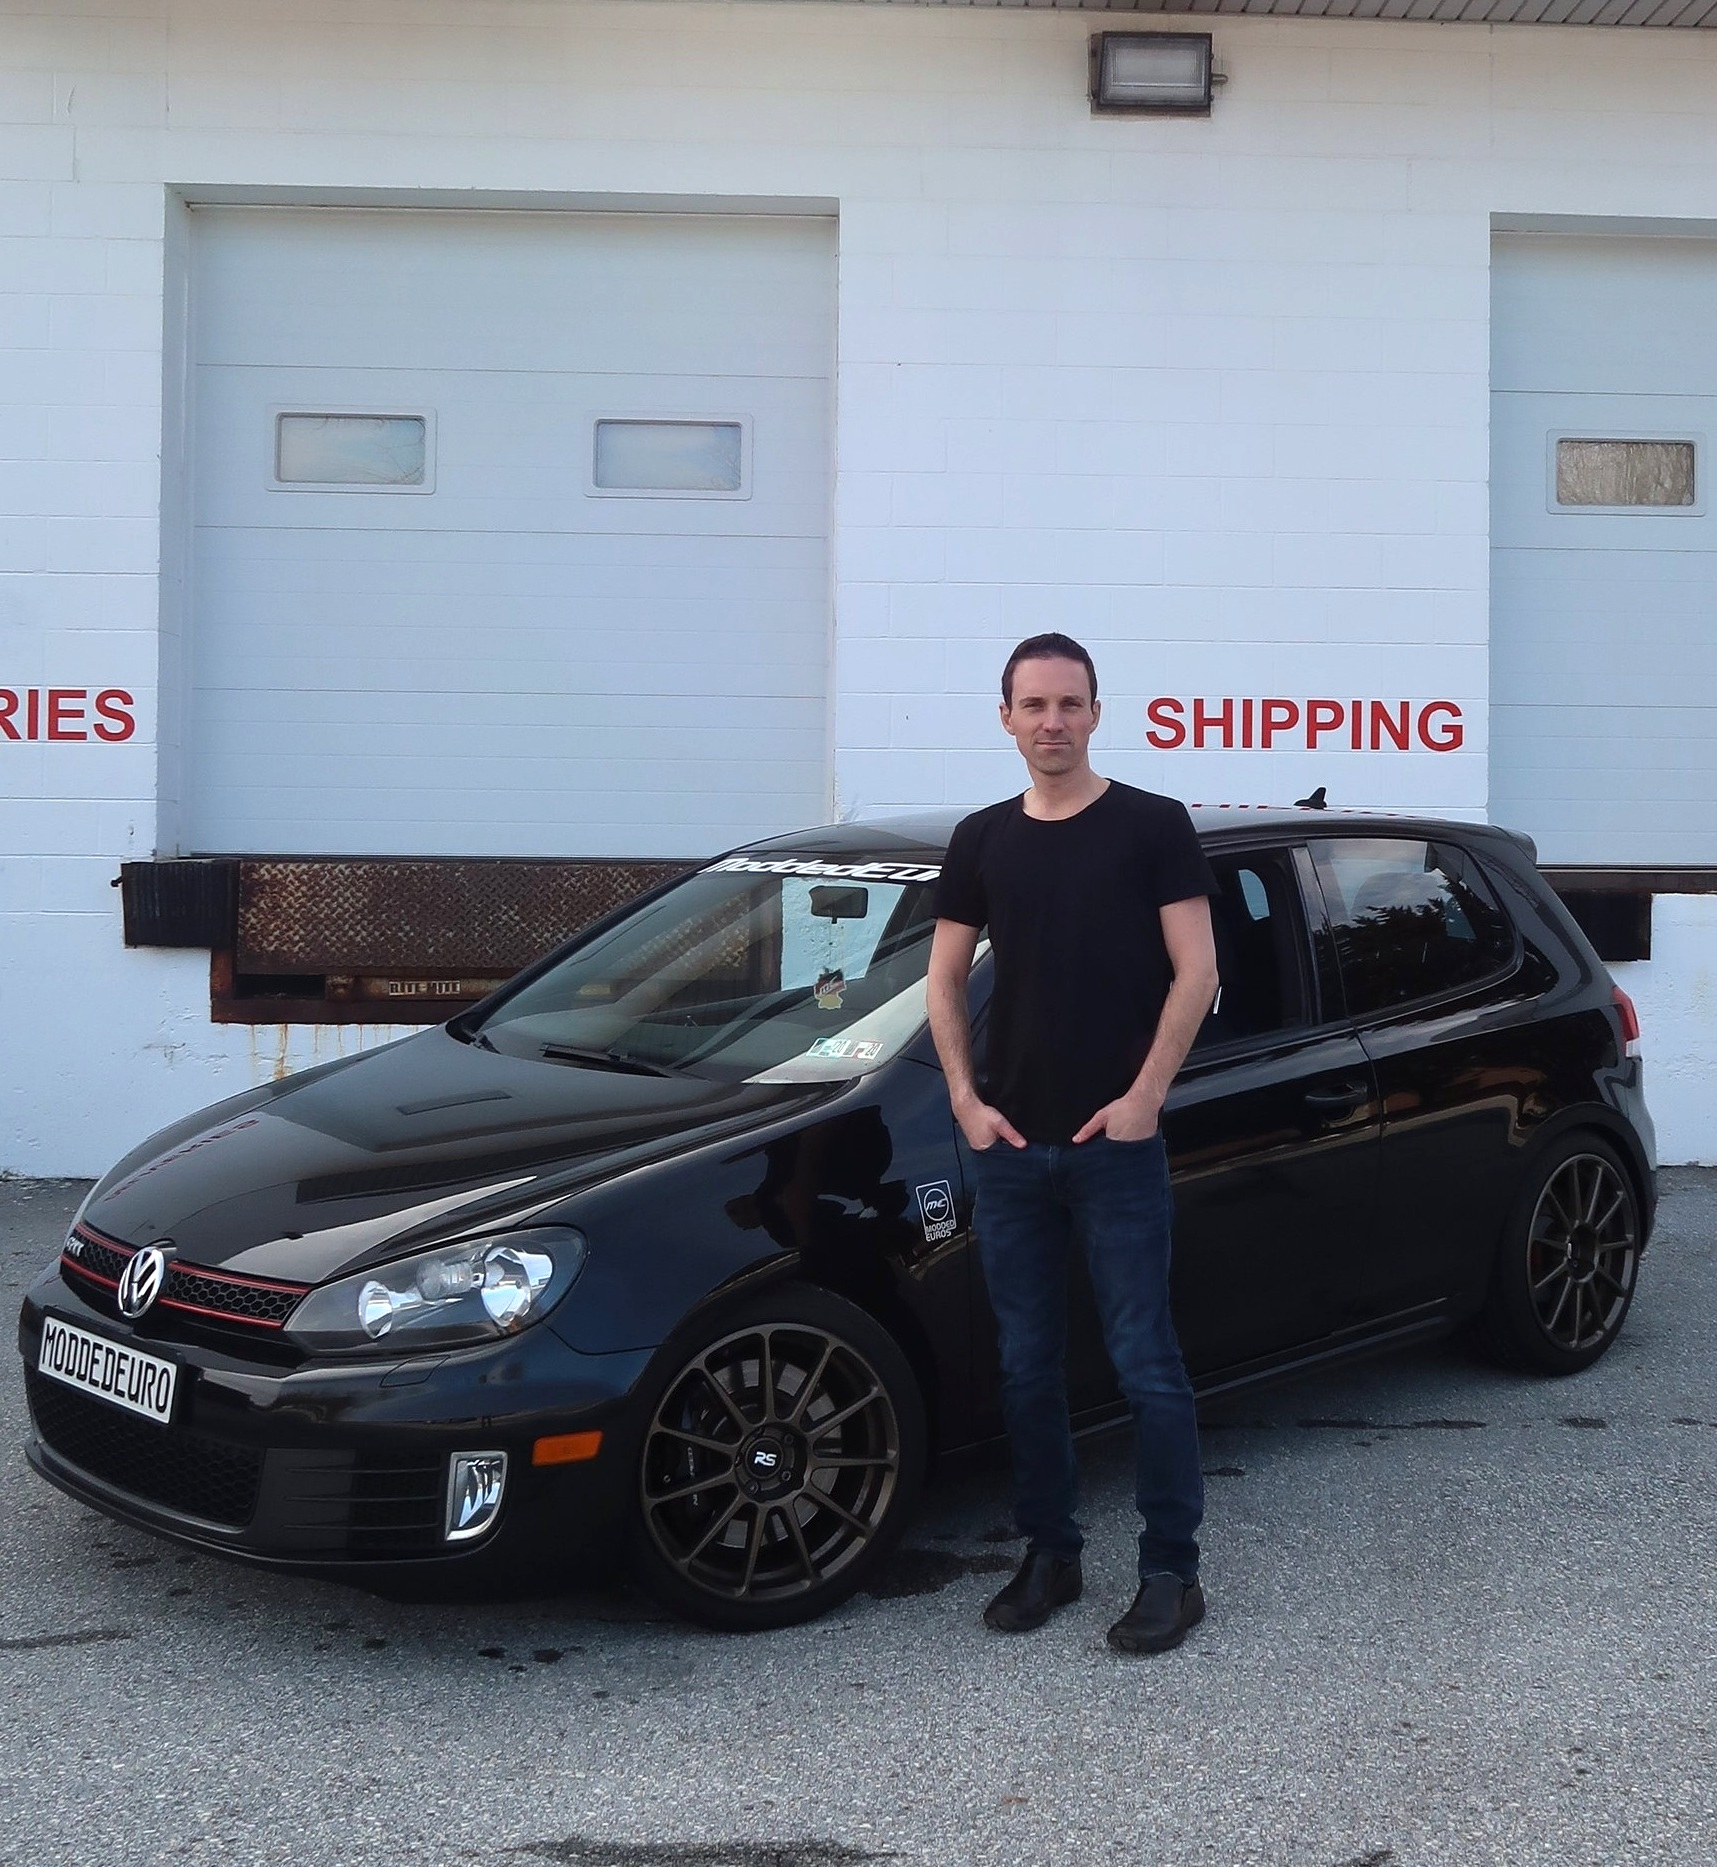 """""""I think you have to feel the fear and just do it anyway."""" - Sean Dawes, co-founder of Modded Euros"""